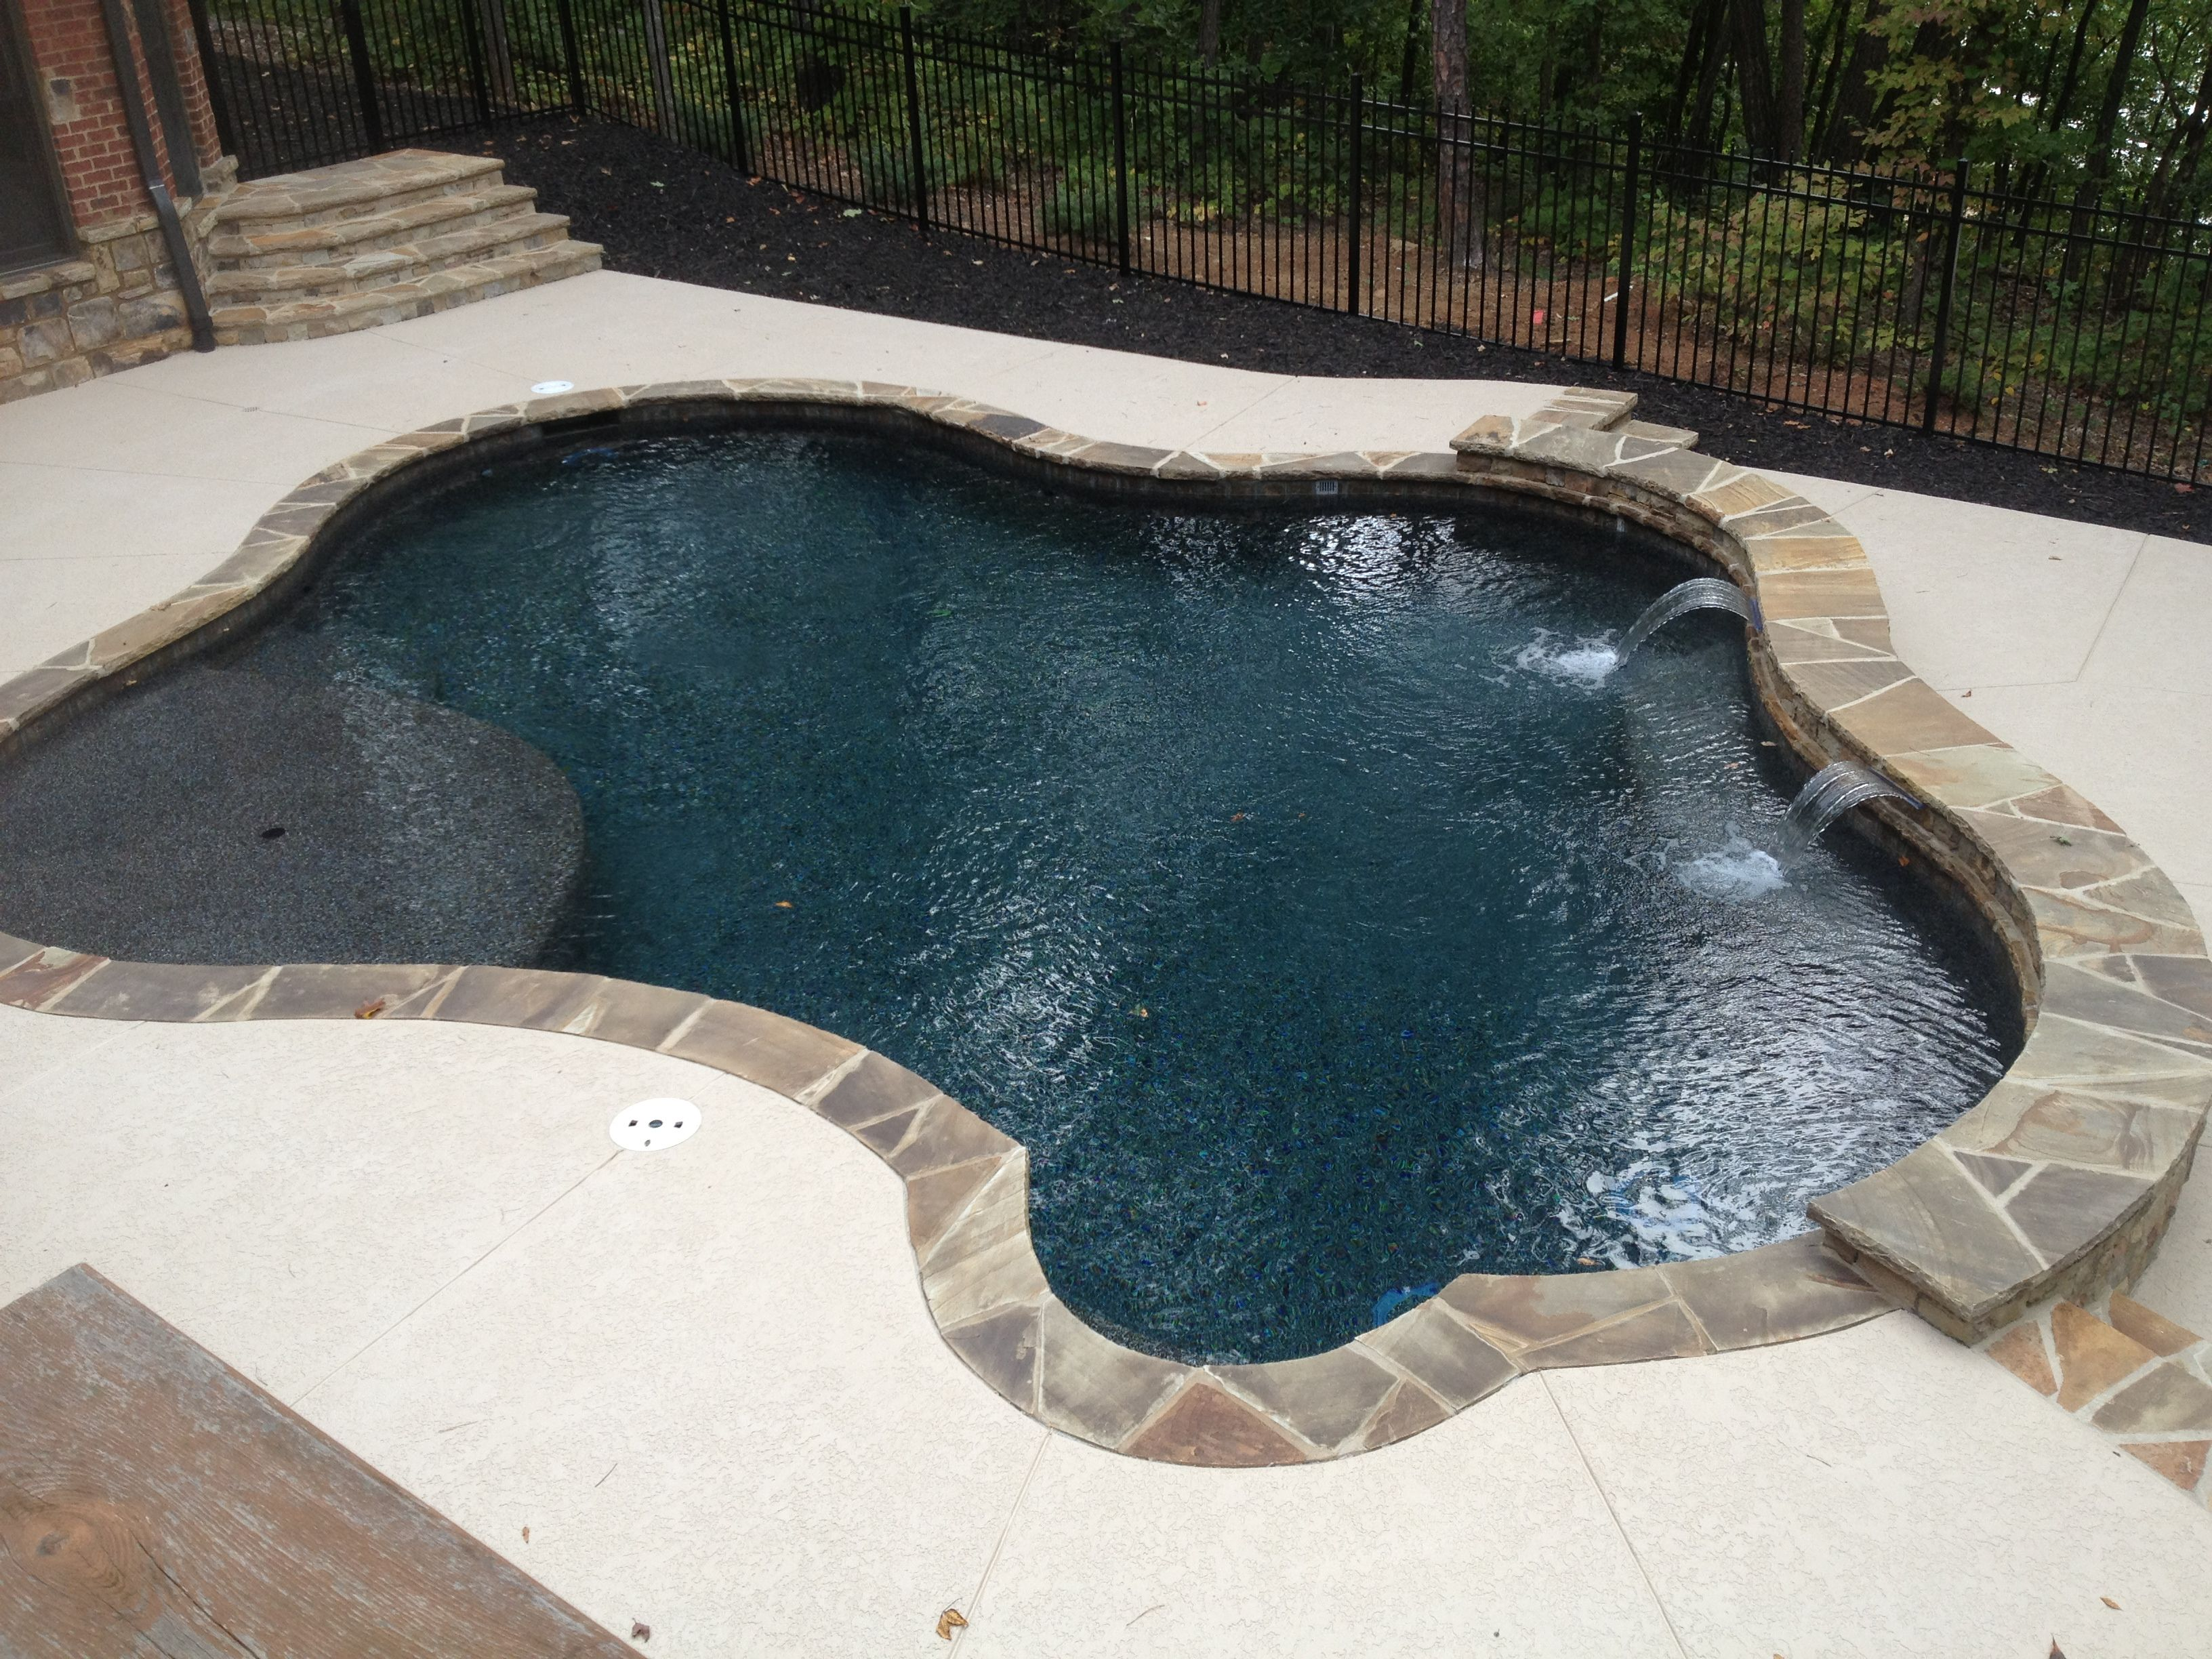 Black Marble Pebble Tec Rcs Pool And Spa Gunite Pools Pinterest Marbles Backyard And